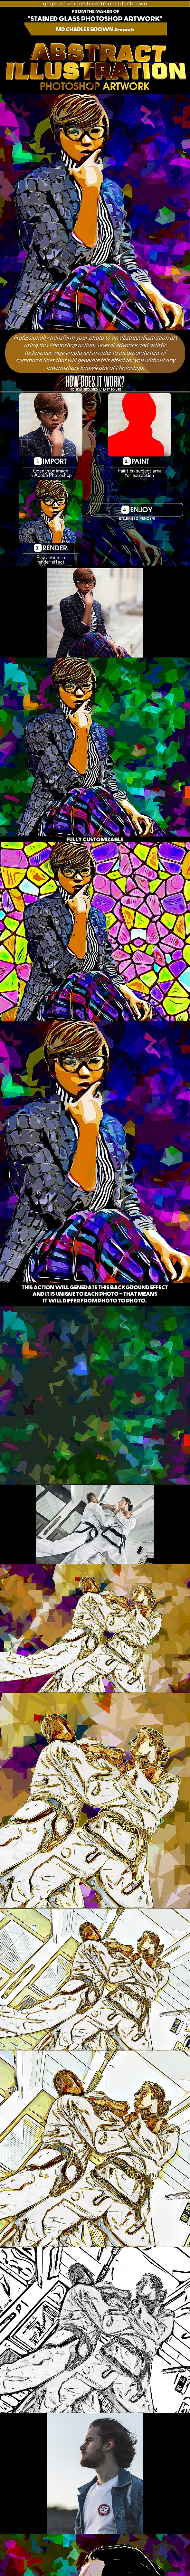 Abstract Illustration Photoshop Artwork - Photo Effects Actions